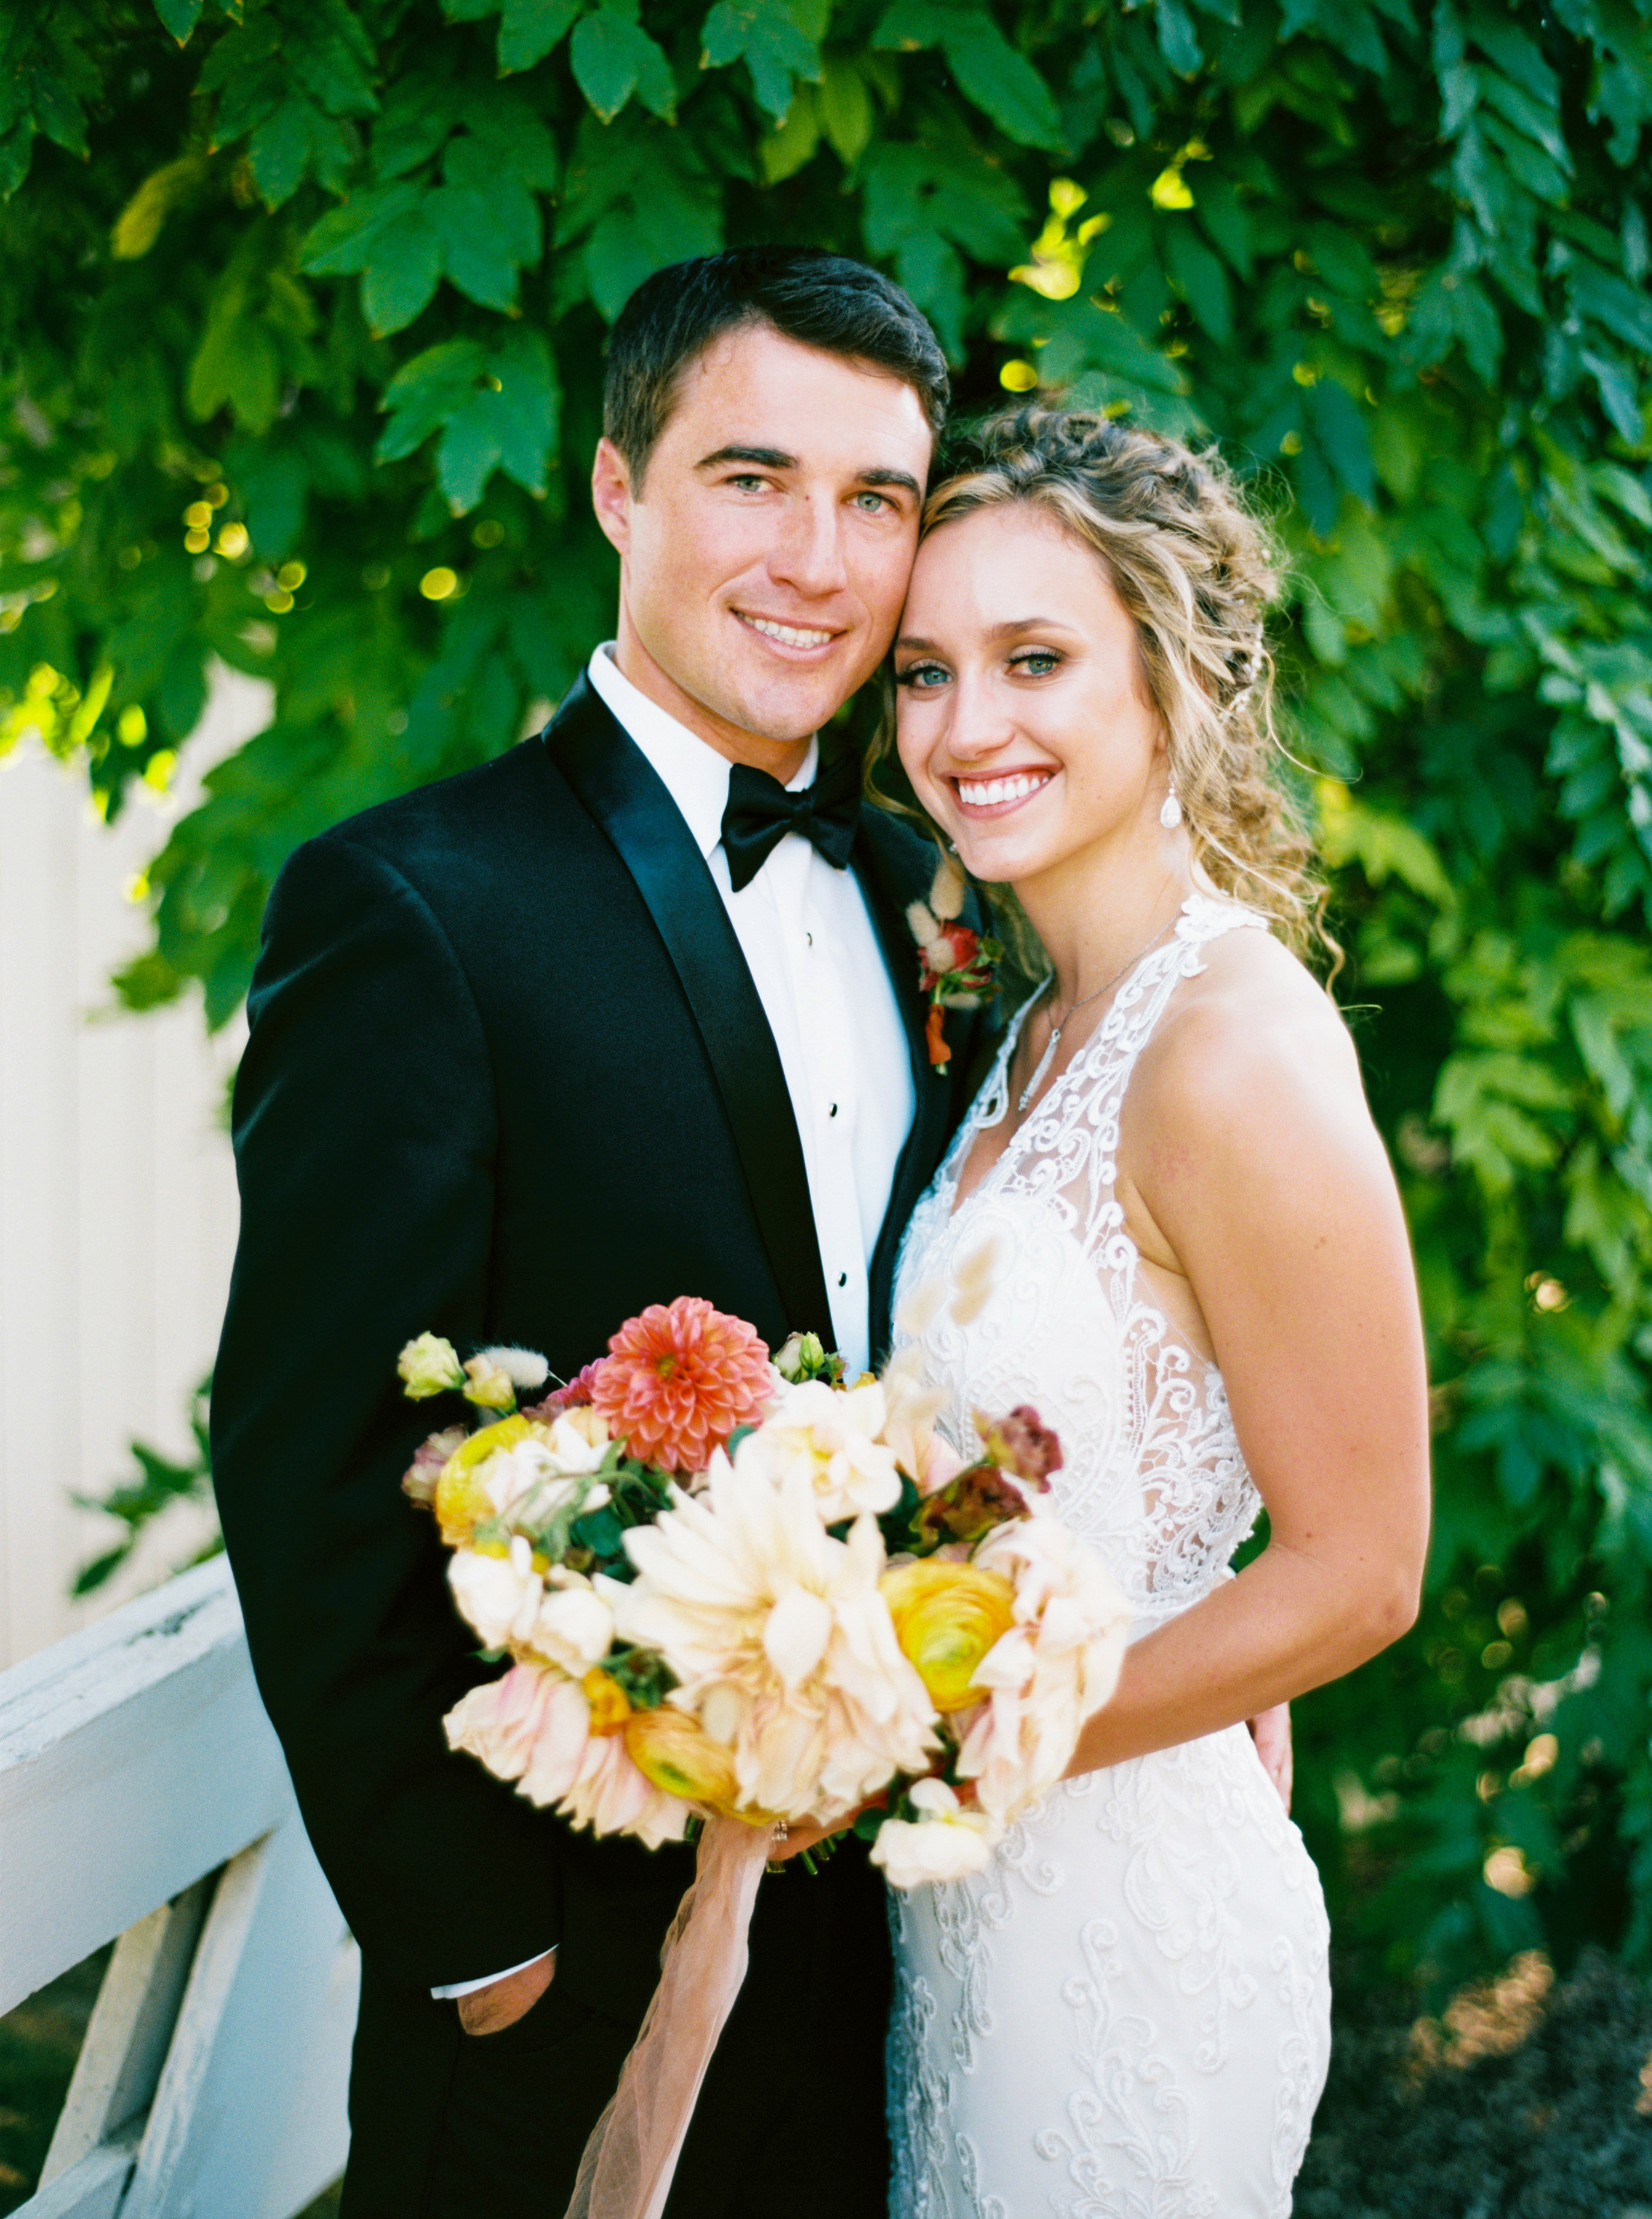 bride and groom pose in wedding attire outdoors